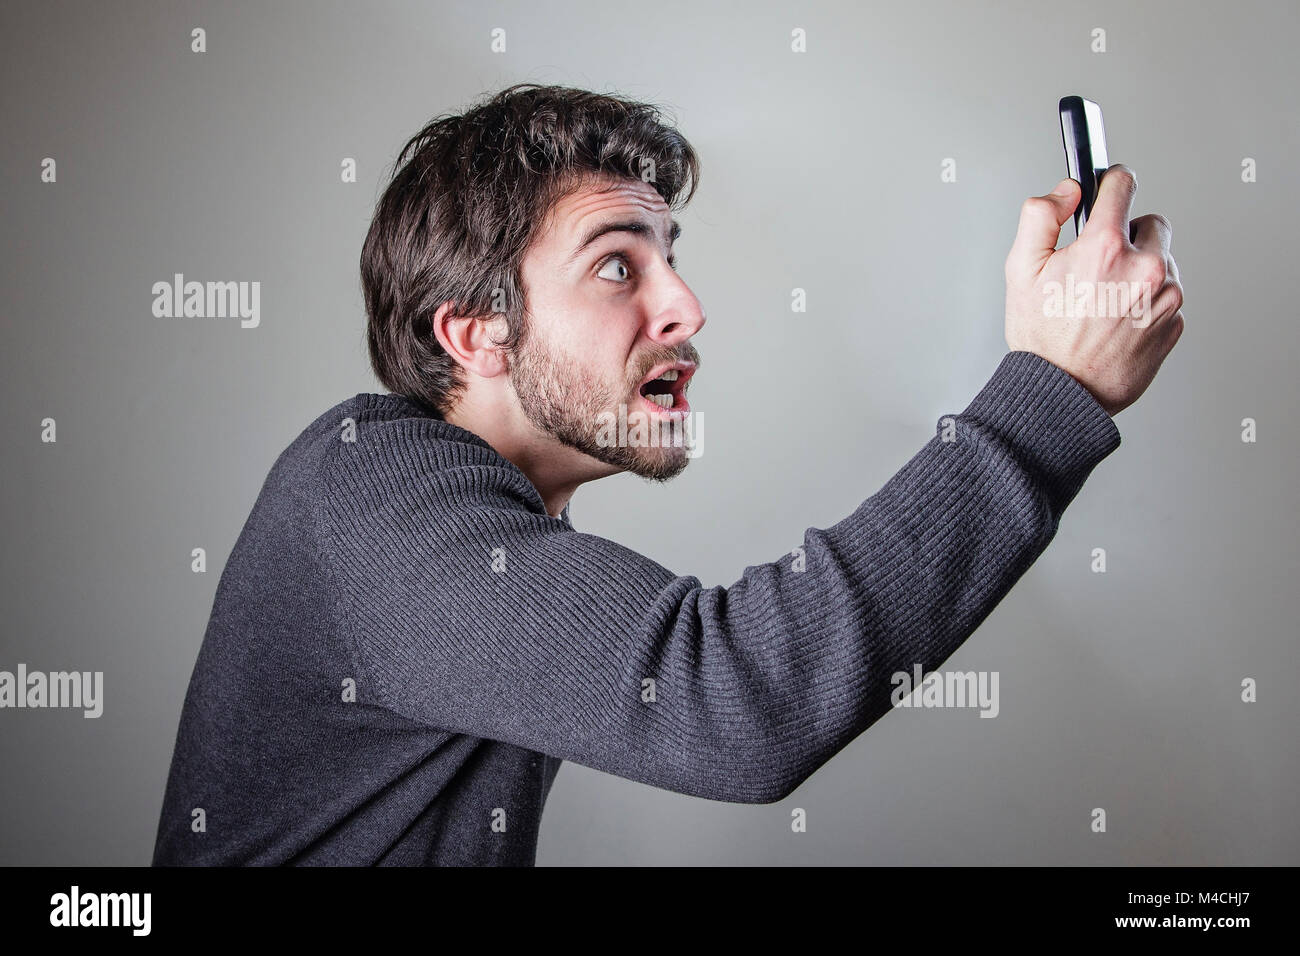 Outraged and angry man yelling at his phone - Stock Image